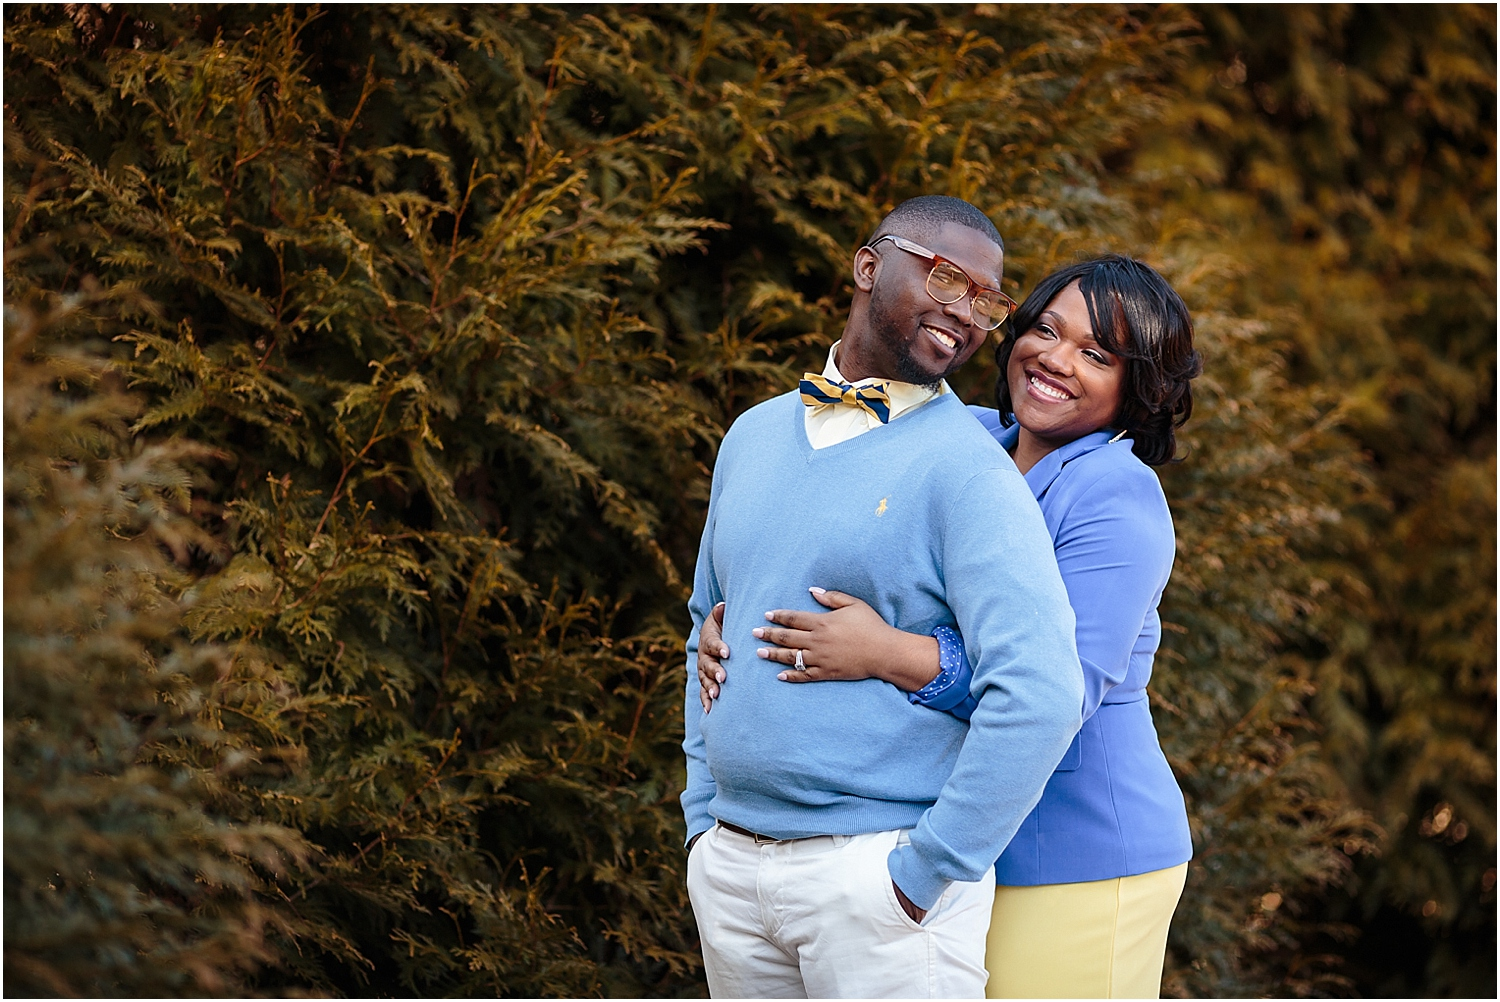 20150131-engagement-outdoor-winter-greenville-7_blog.jpg